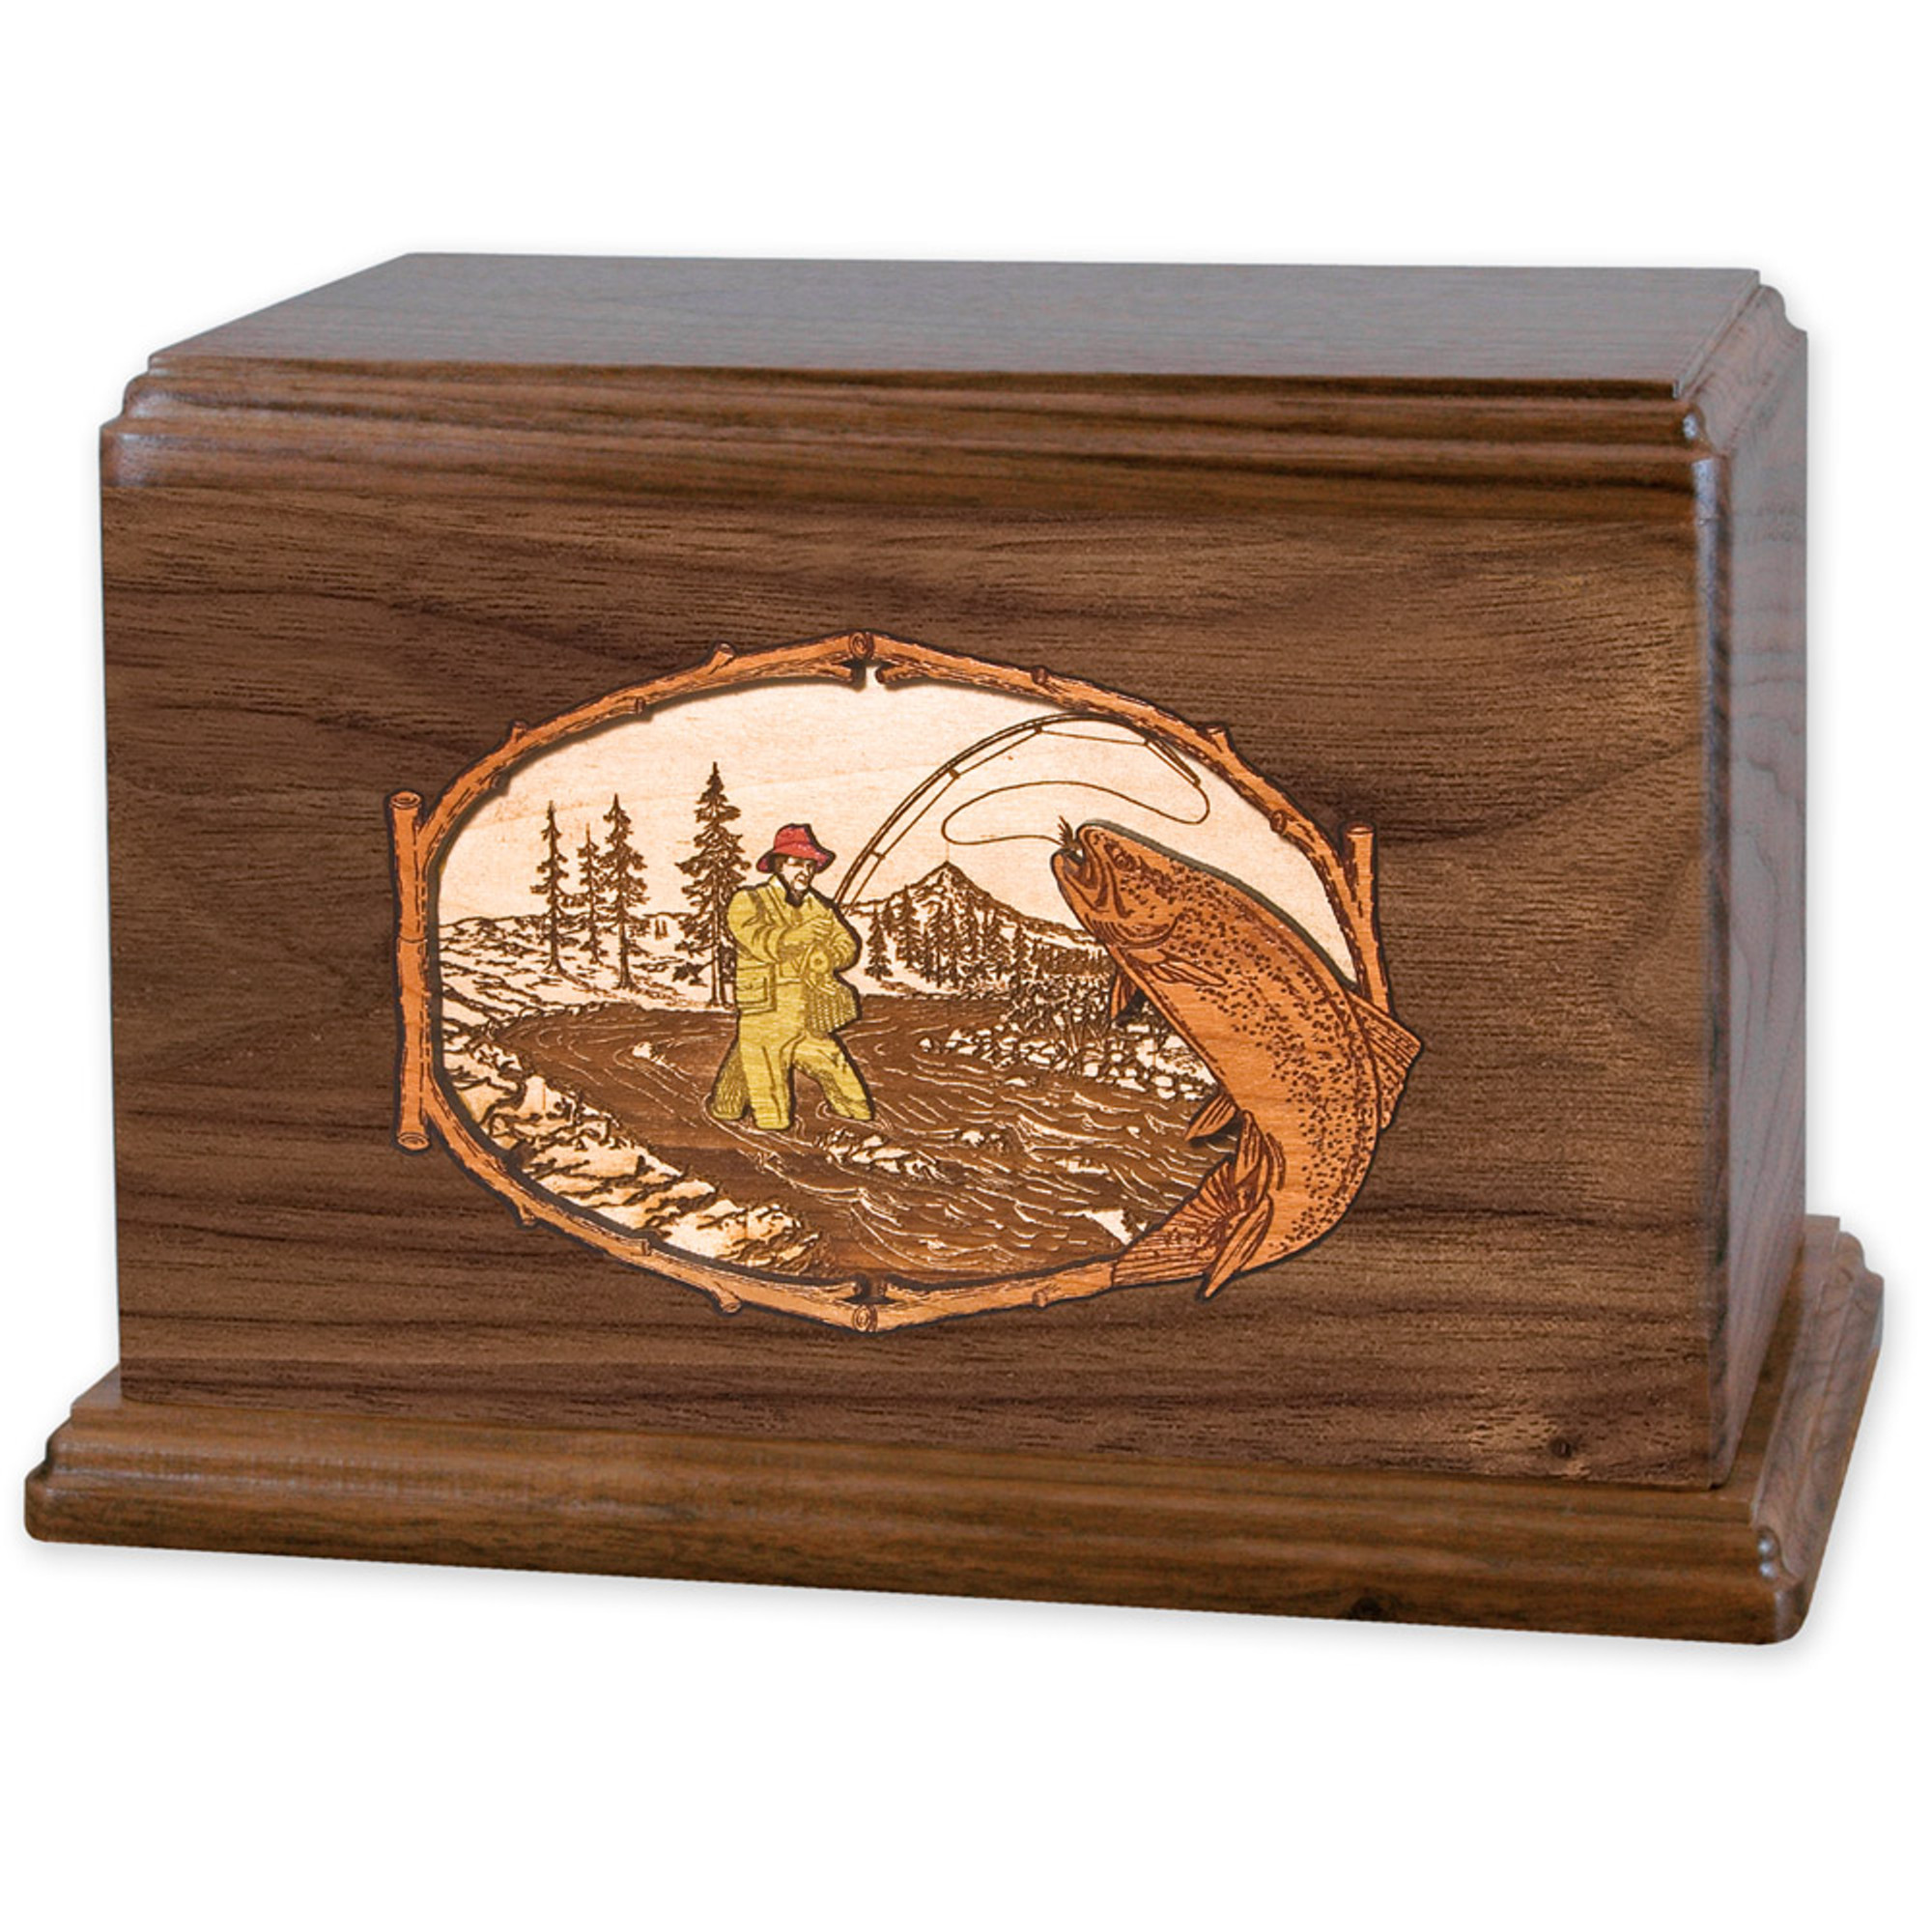 Wood Cremation Urn Wooden Urns Maple Trout Stream Fishing